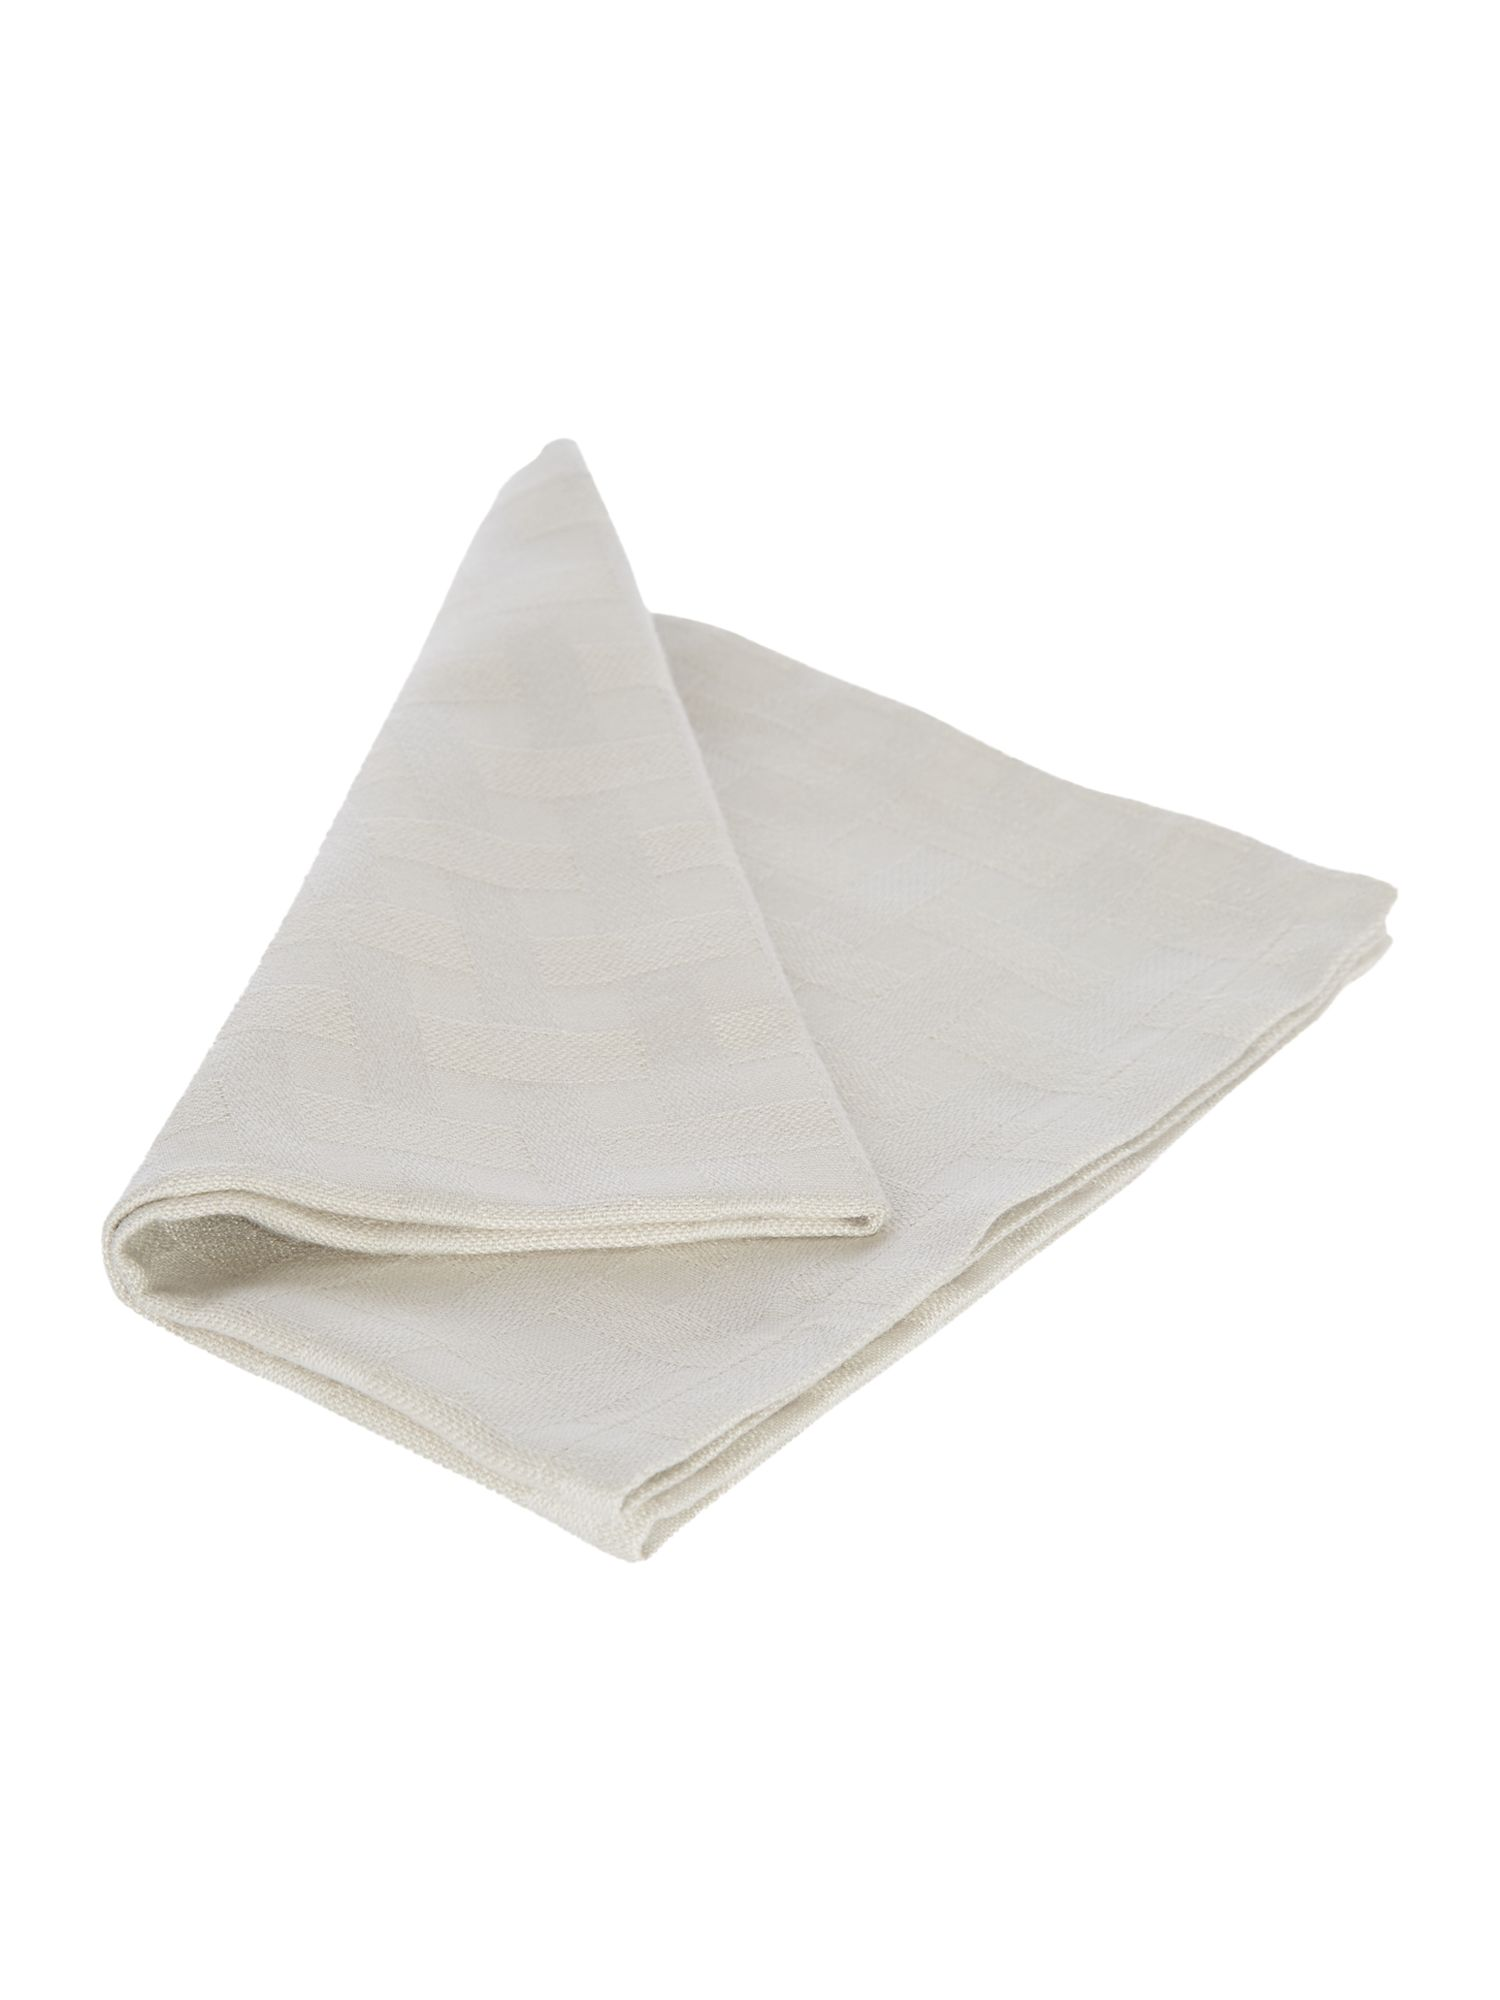 Basket weave set of 4 napkins